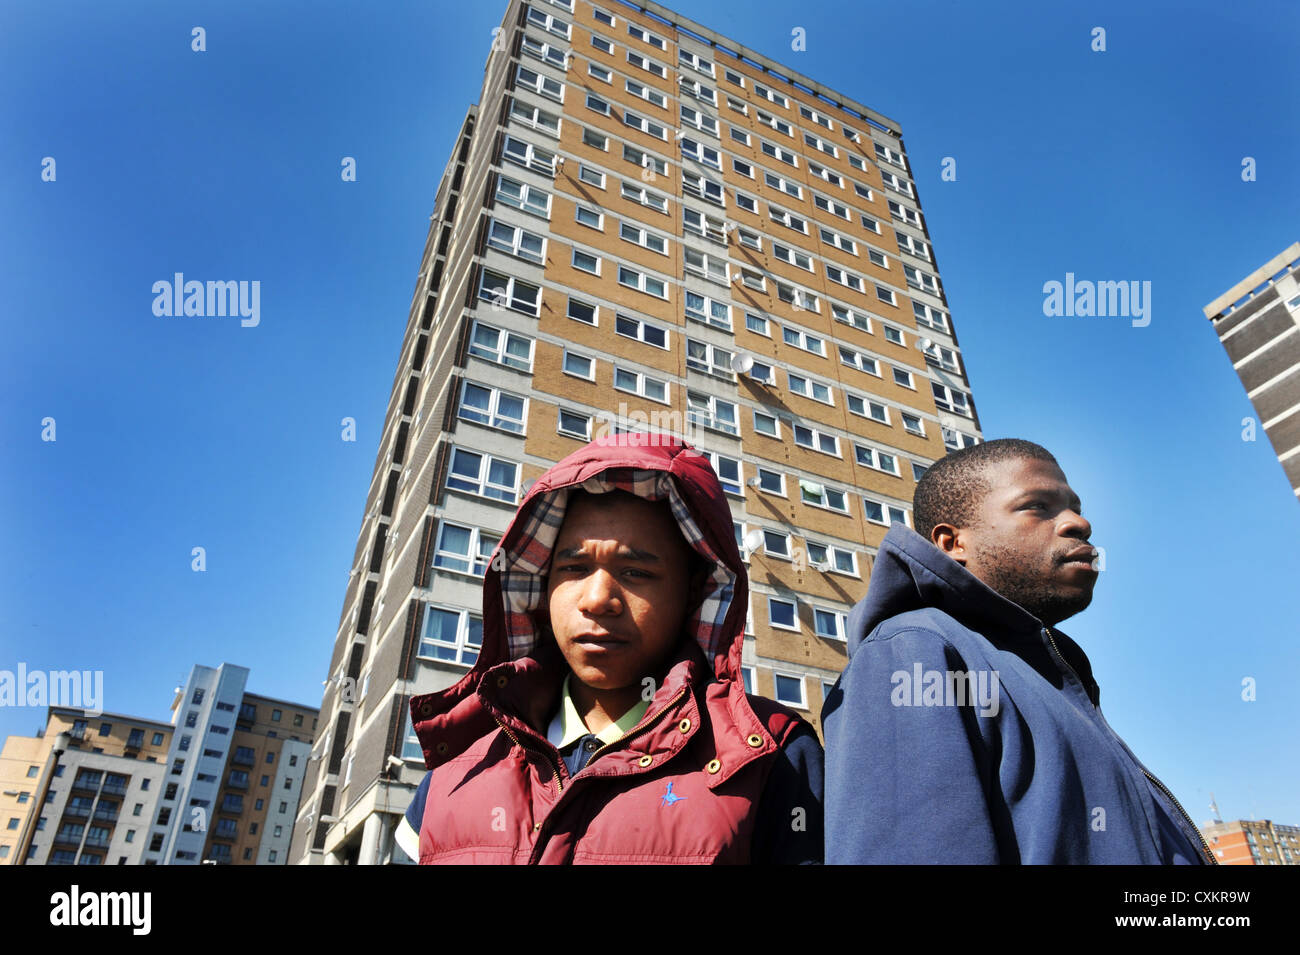 Young Unemployed Youth Leeds UK - Stock Image